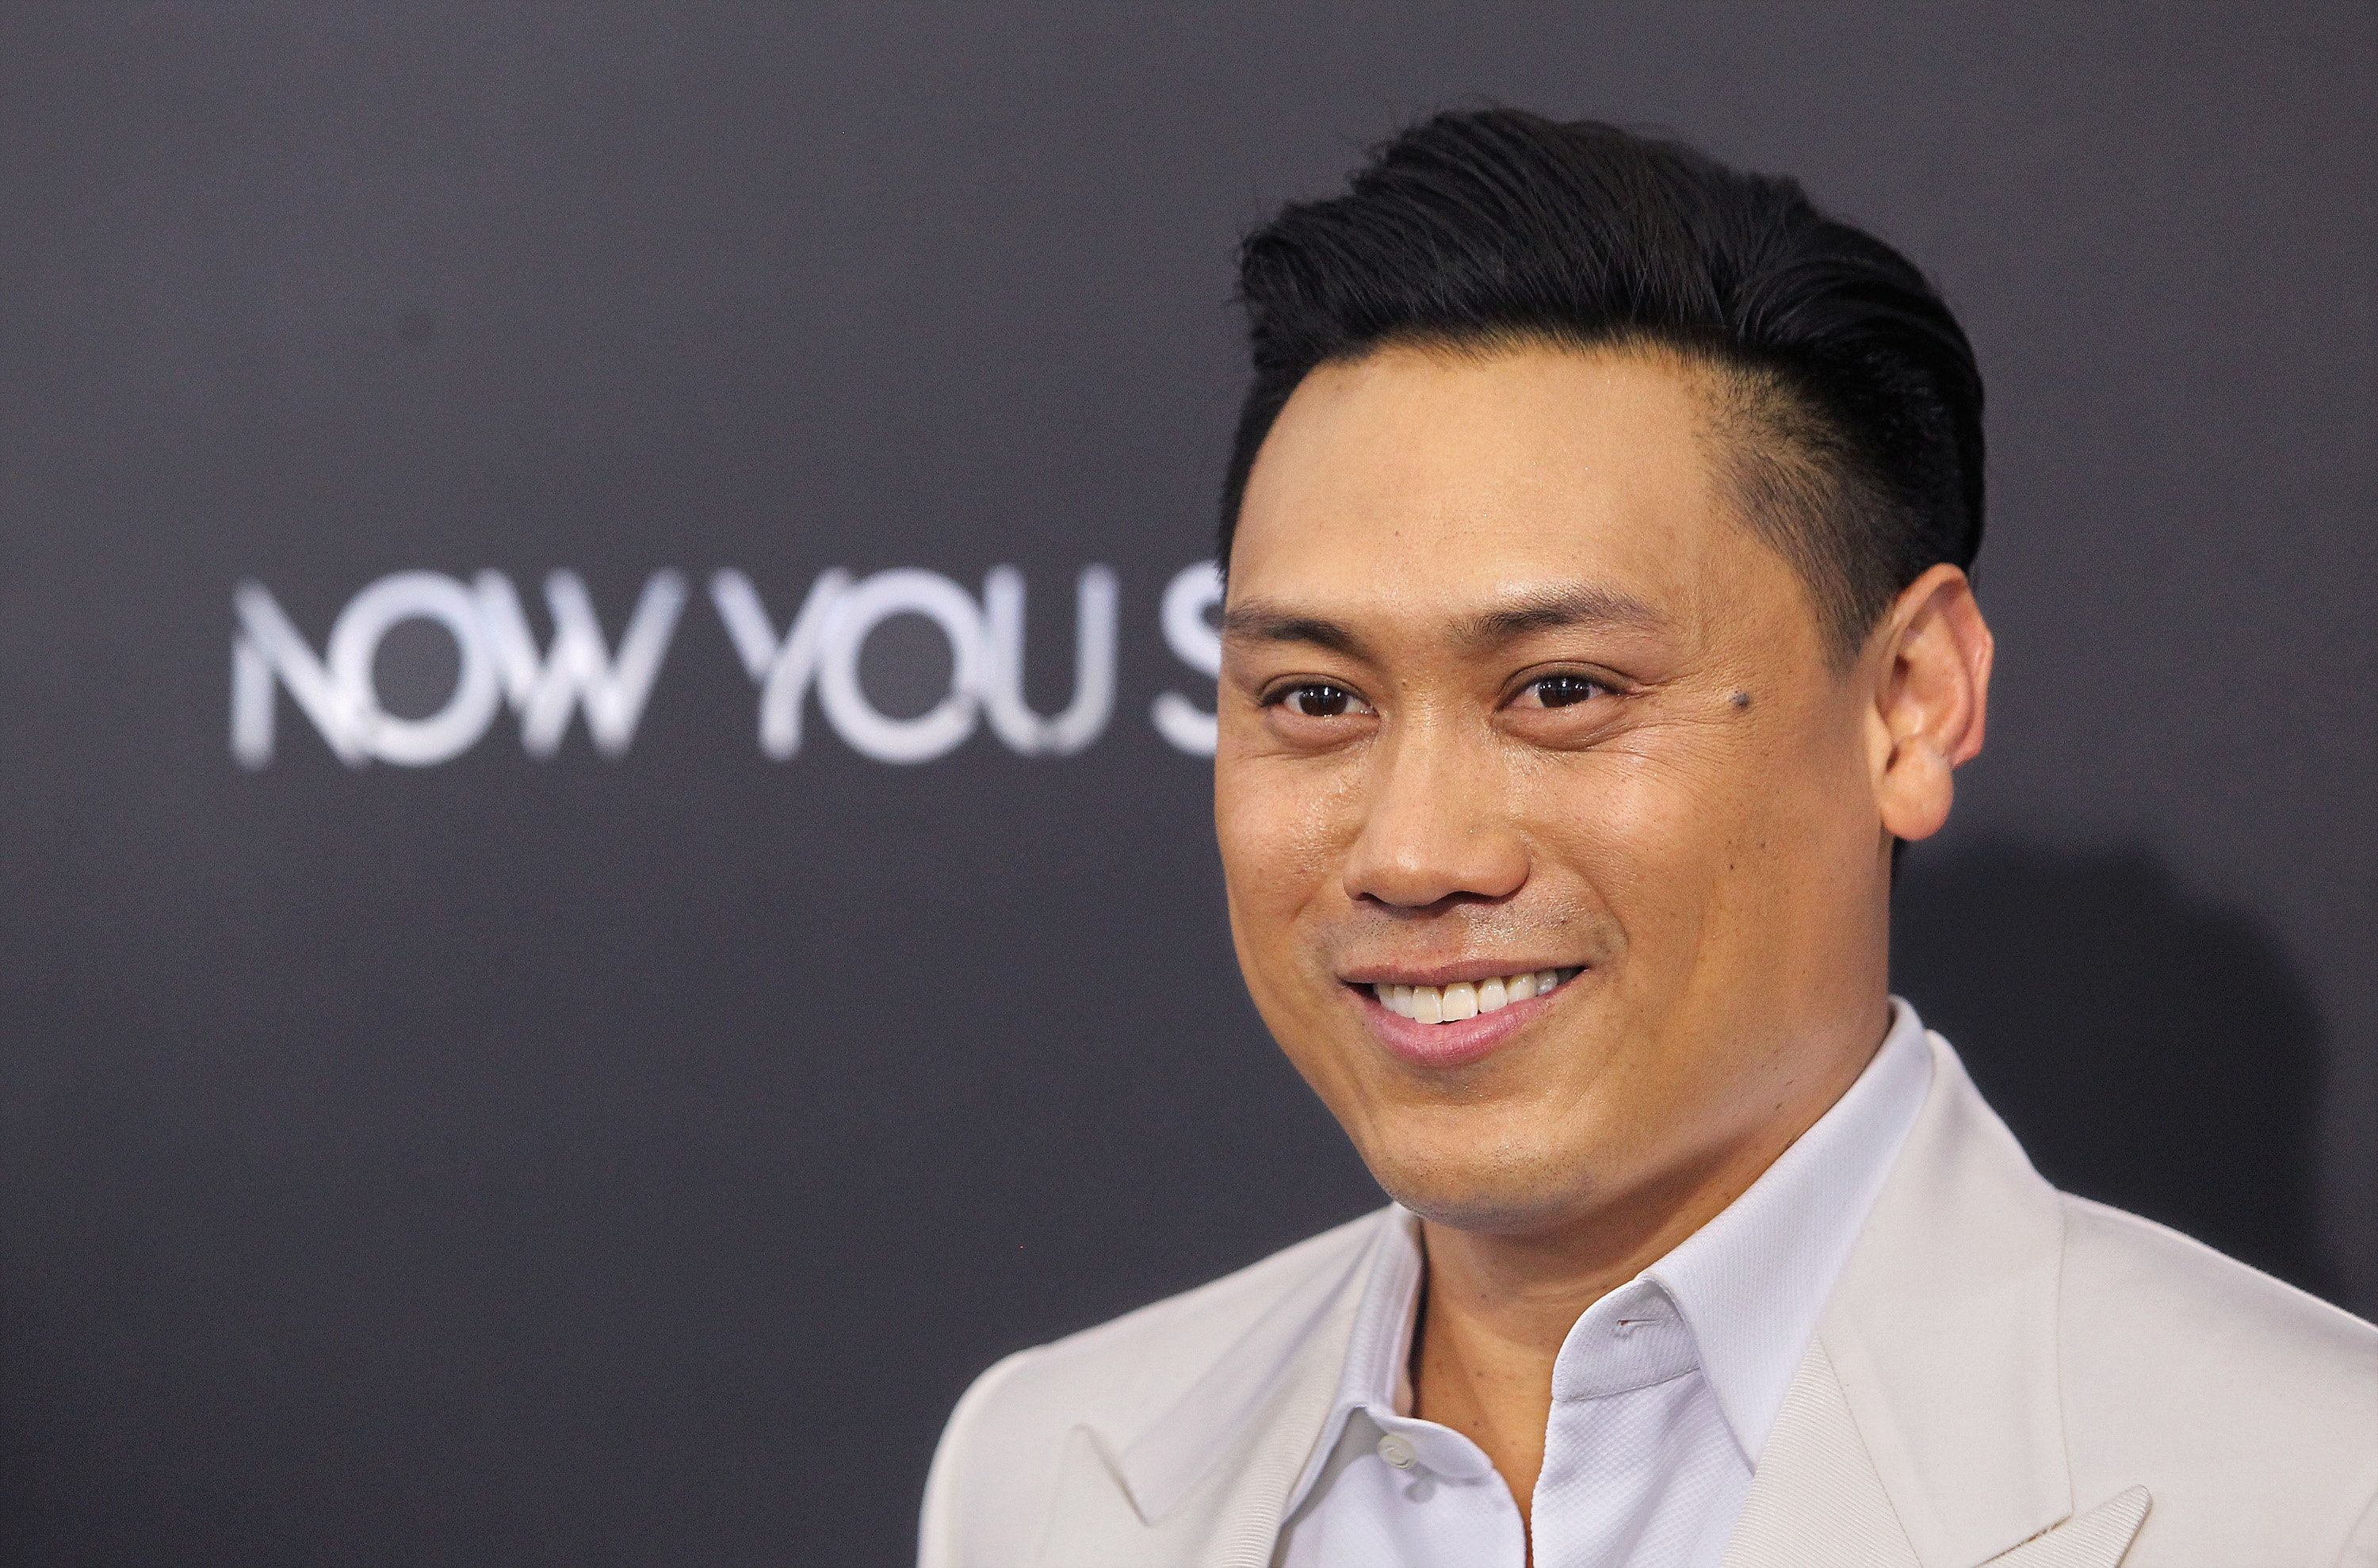 Jon M. Chu has reportedly partnered with Ivanhoe Pictures to make a film about the rescue mission.